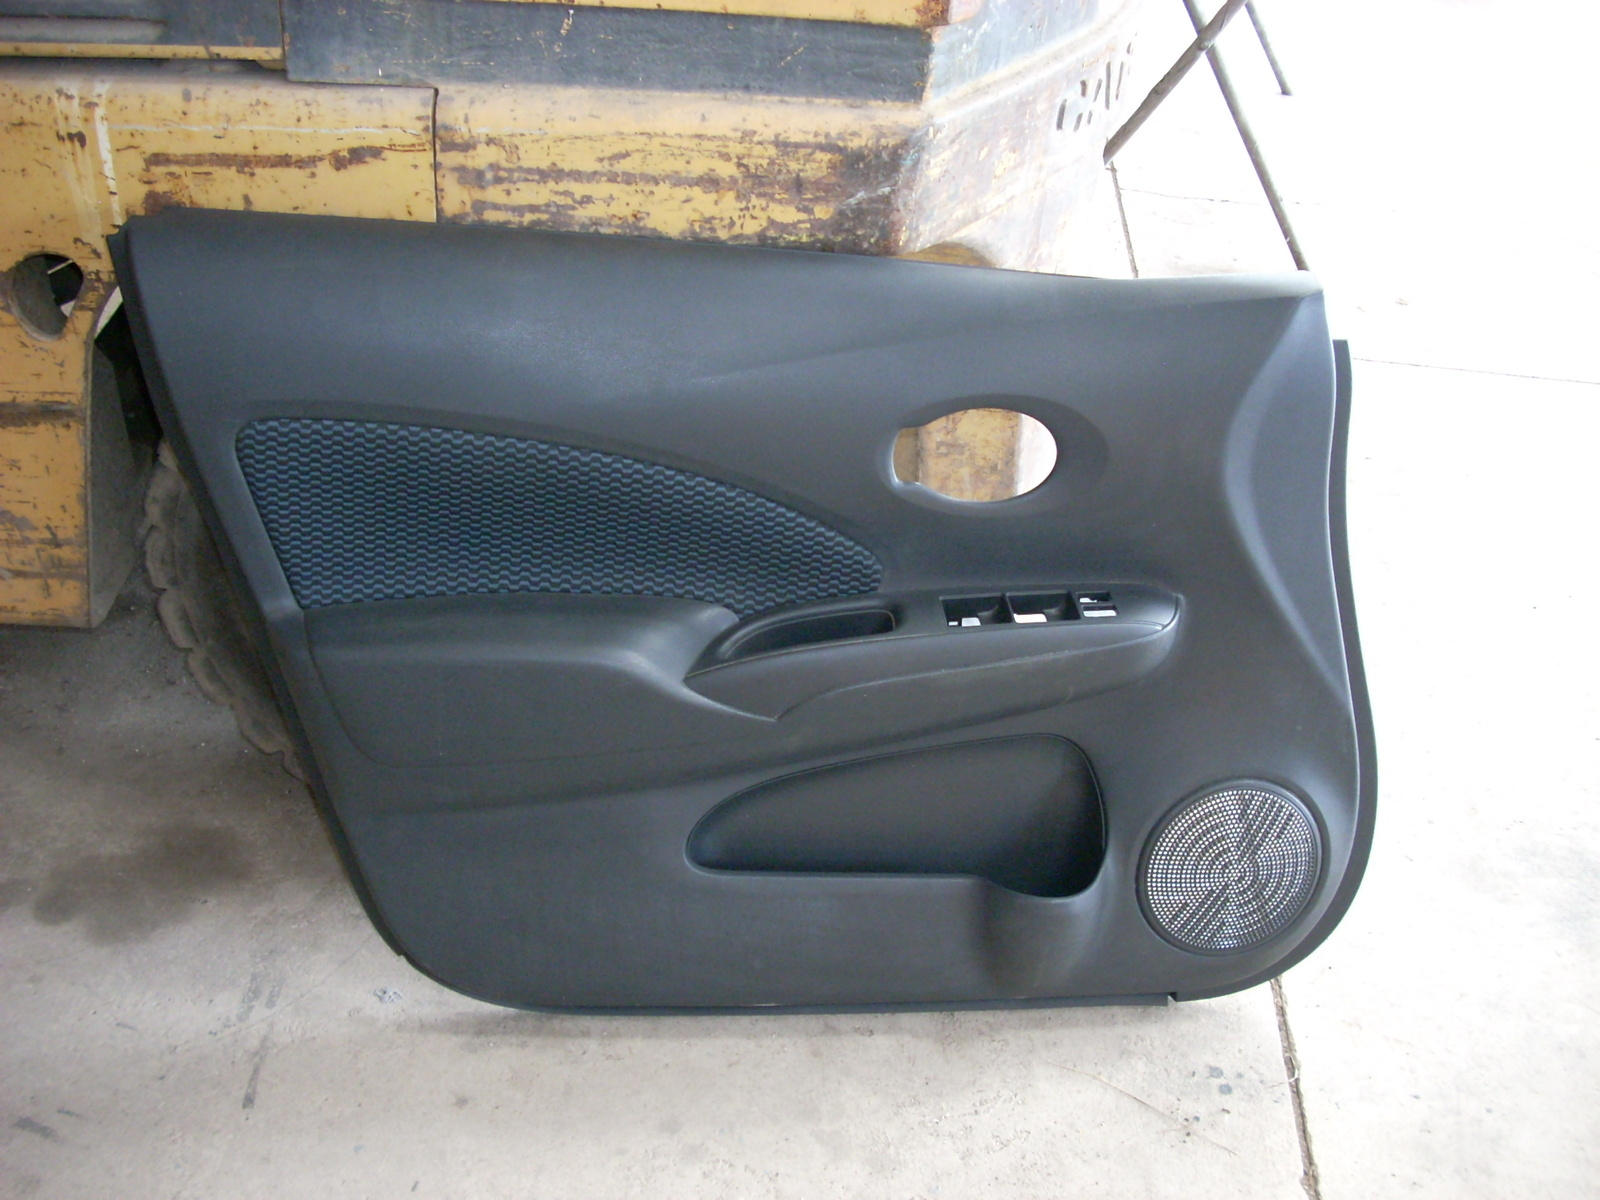 2014 NISSAN VERSA NOTE LEFT FRONT DOOR TRIM PANEL